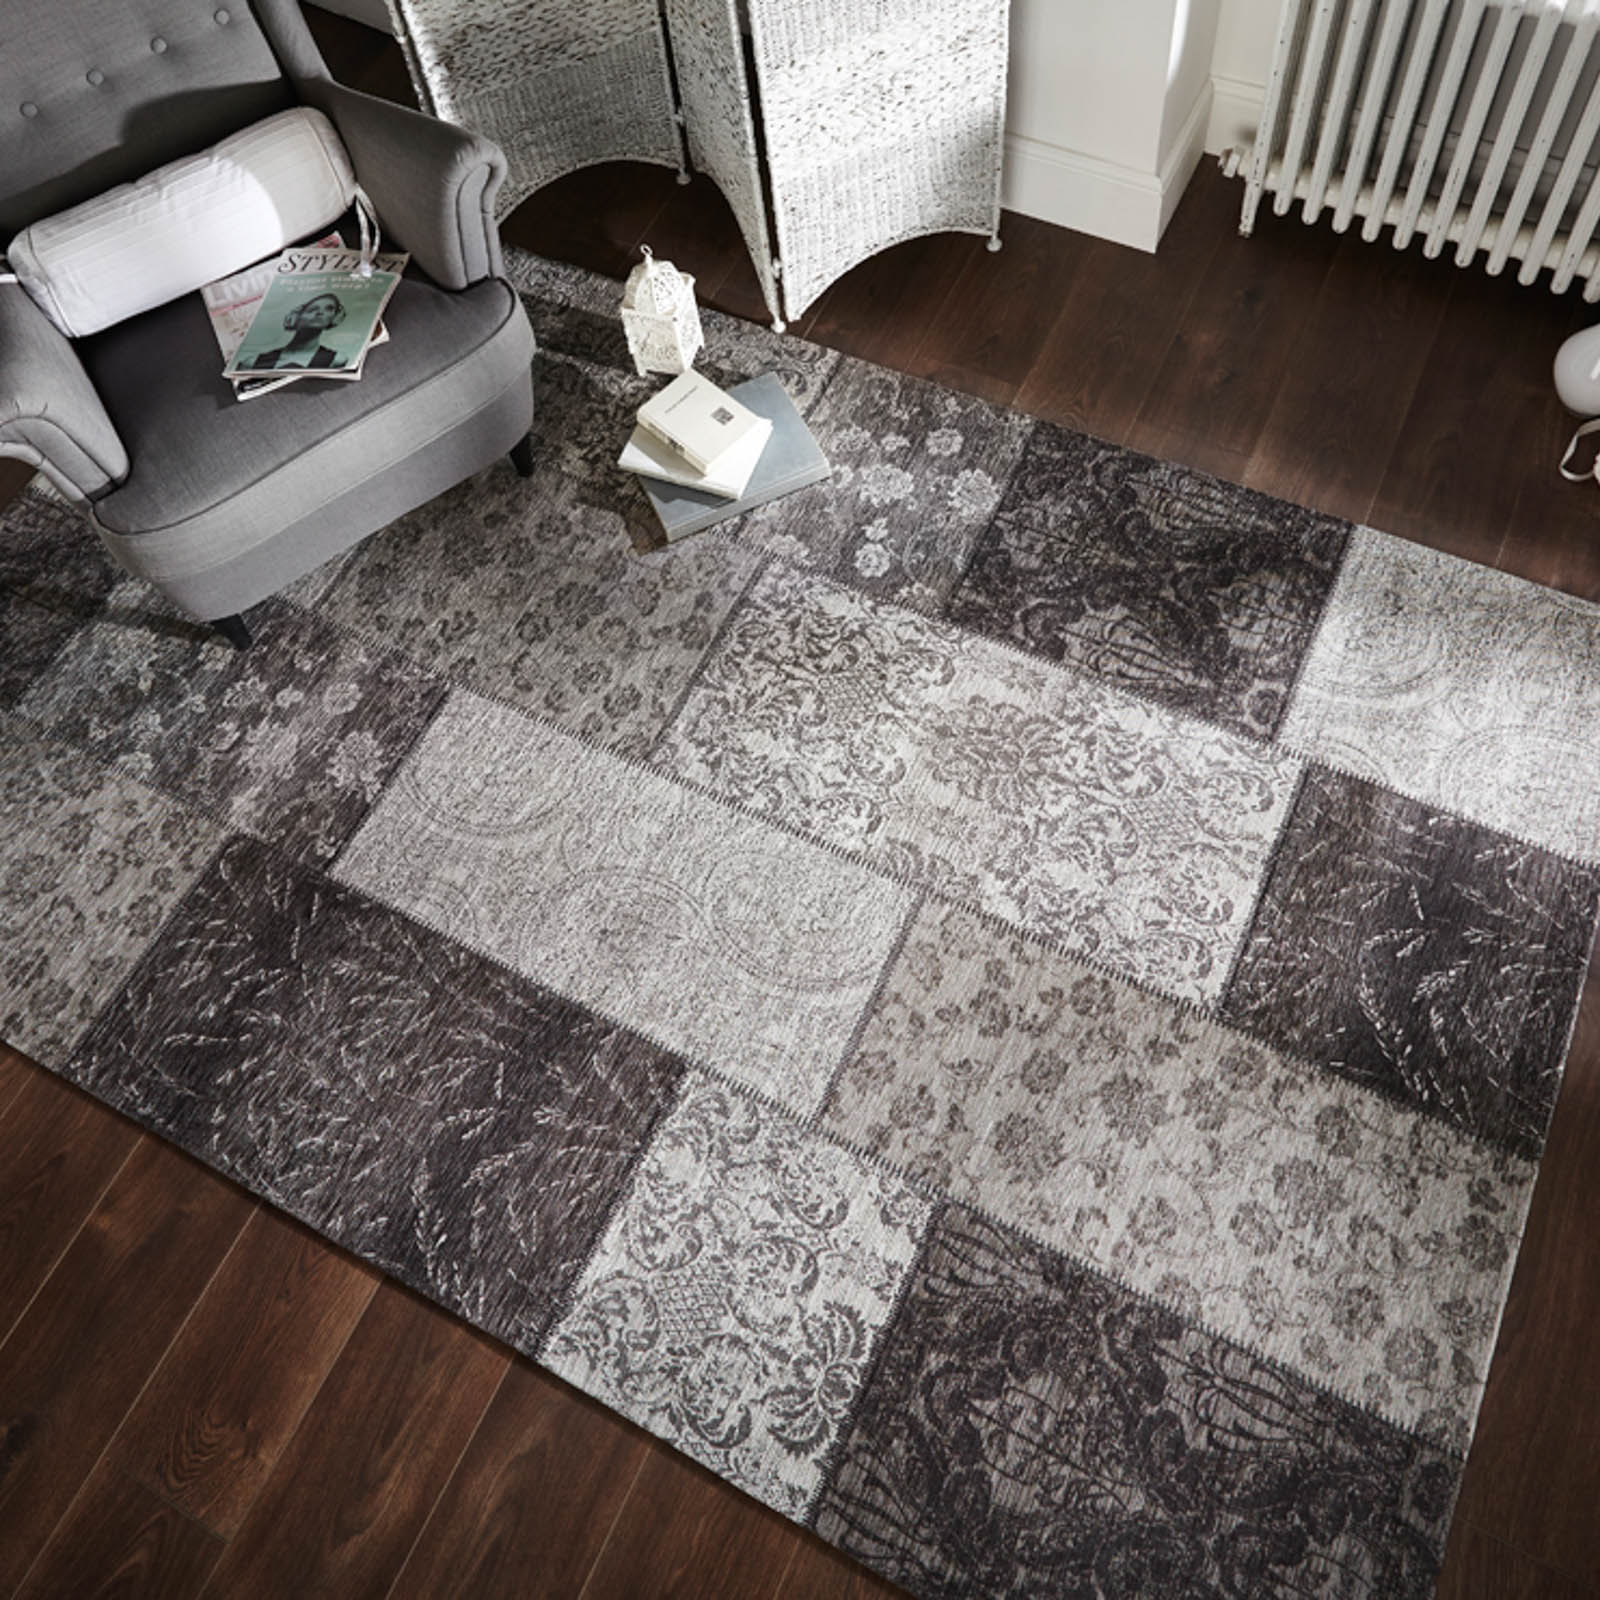 Manhattan Patchwork Chenille Rugs In Black And Grey Free